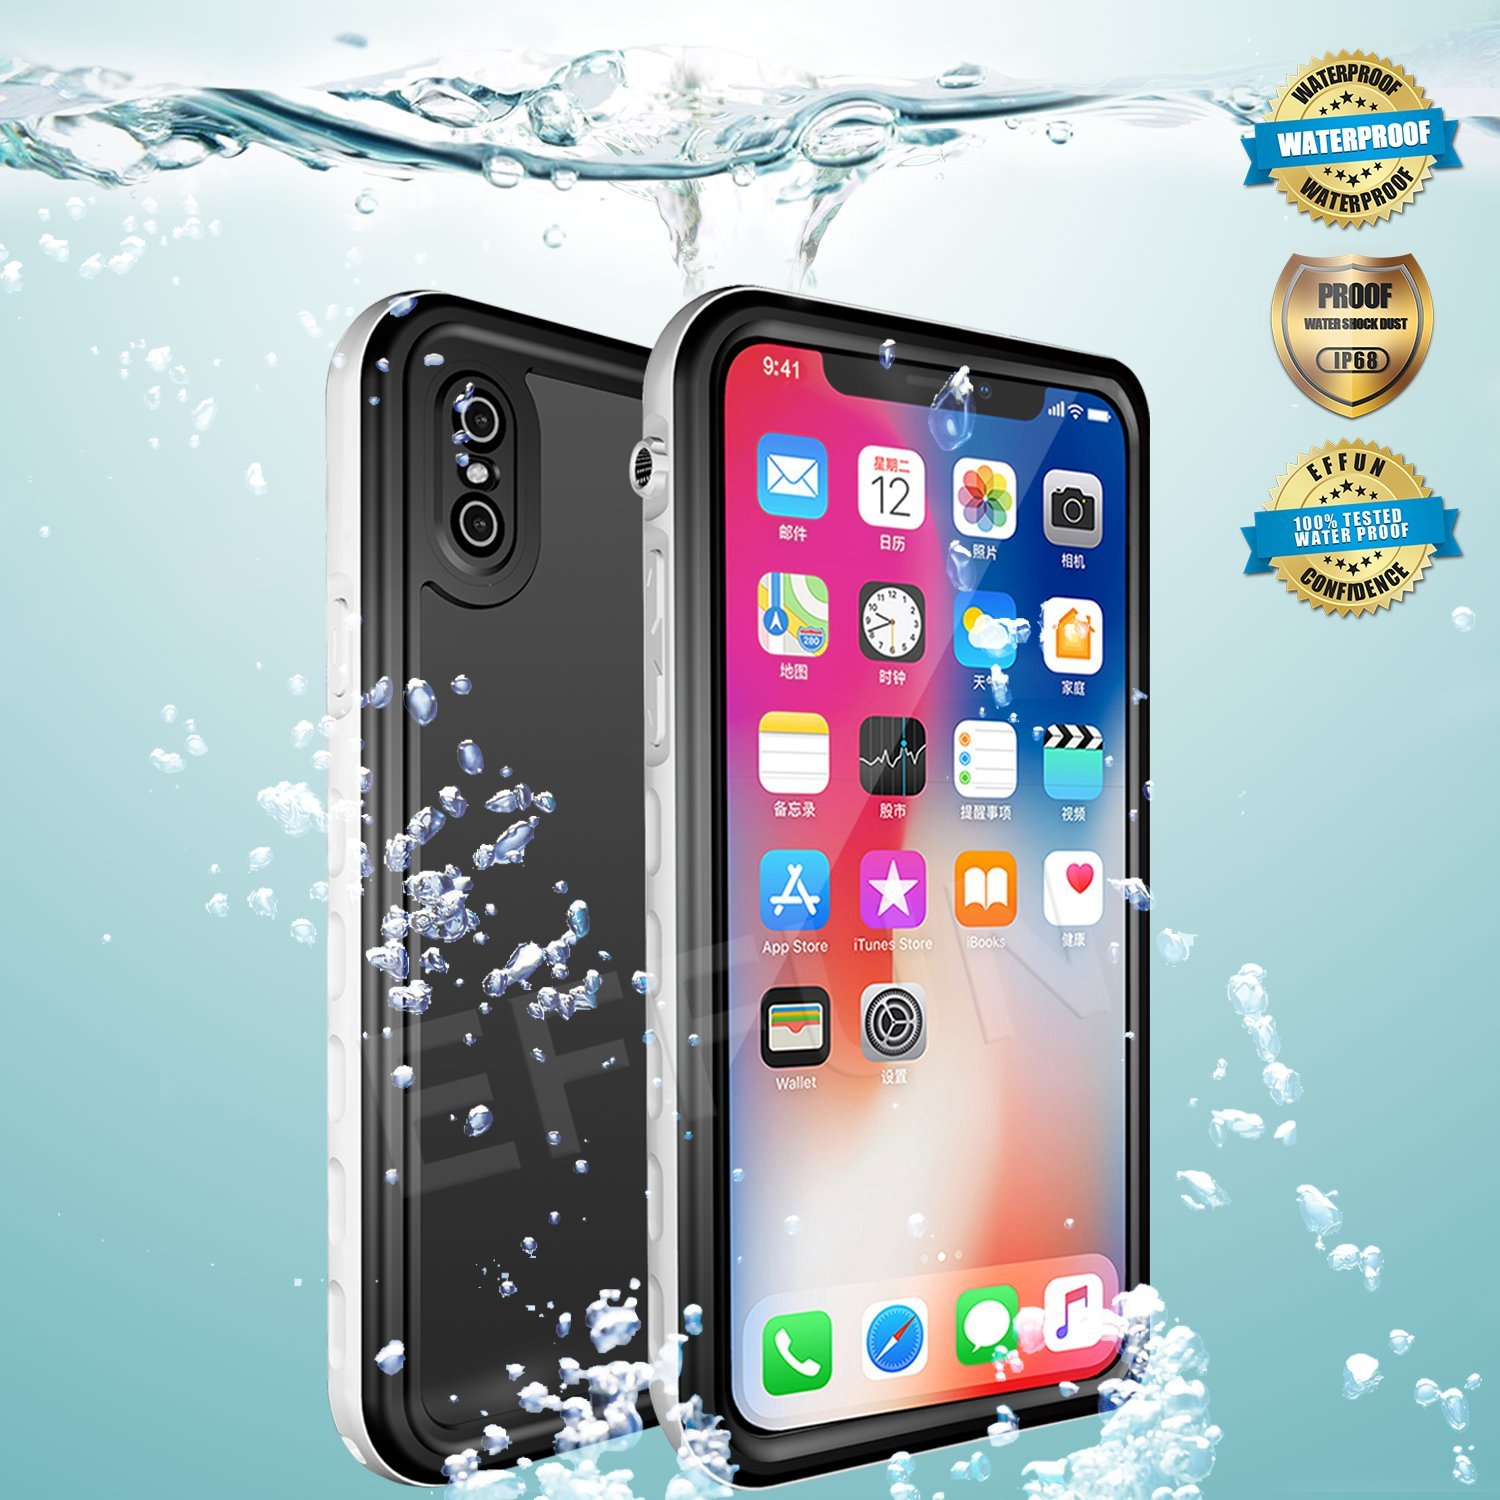 iPhone Xs Waterproof Case, iPhone X Waterproof Case, EFFUN Wireless Charging Support IP68 Certified Waterproof Shockproof Case with Phone Holder, PH Test Paper, Stylus Pen, Float Strap for iPhone Xs/X